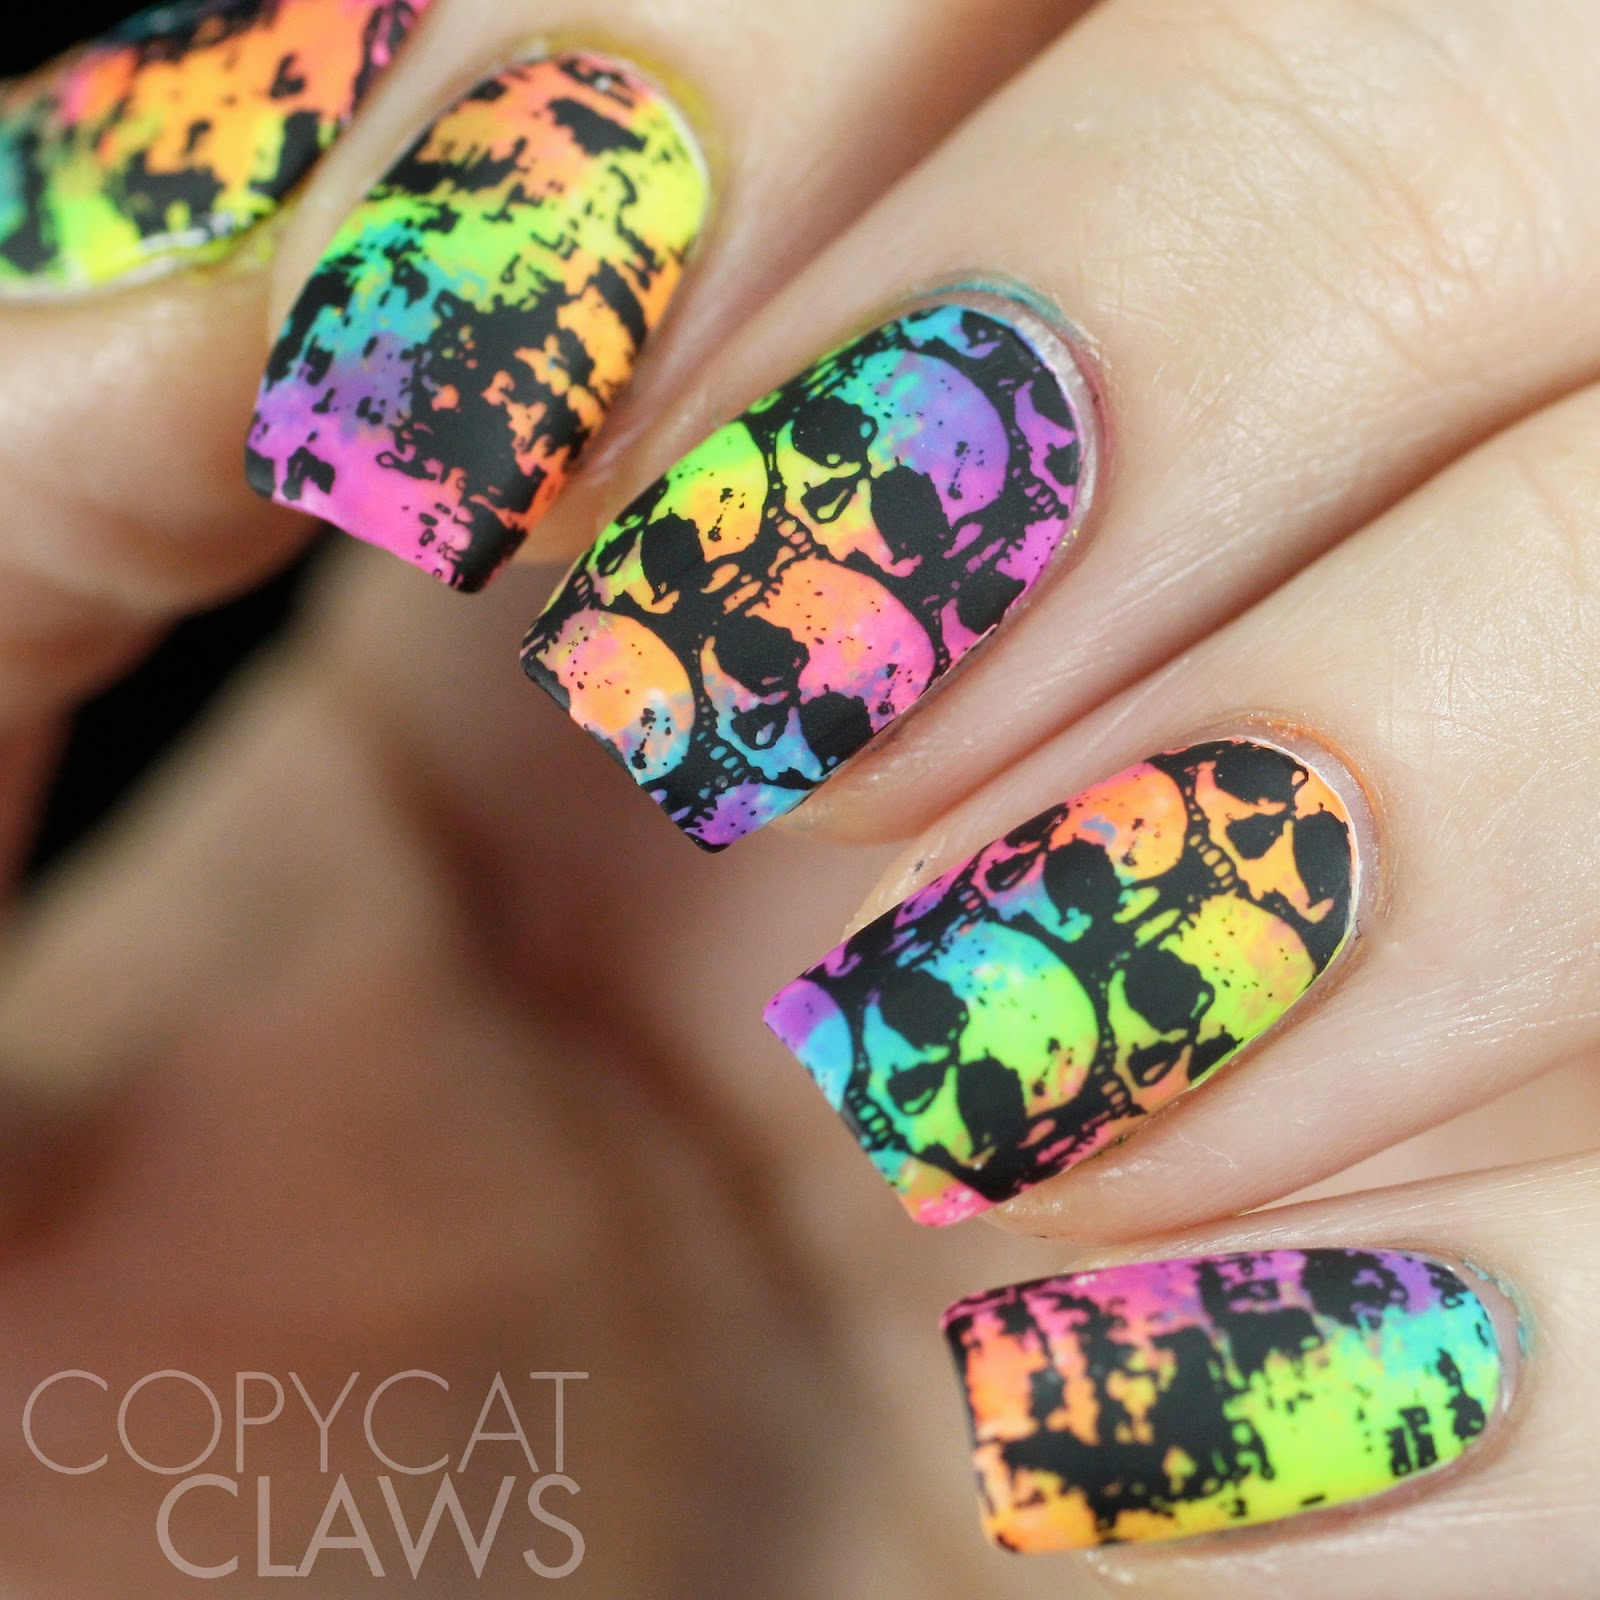 Copycat claws 26 great nail art ideas black and neon for the stamping i used mundo de unas black and two images from lina nail art supplies make your mark 04 the only thing i really switched up from the prinsesfo Gallery